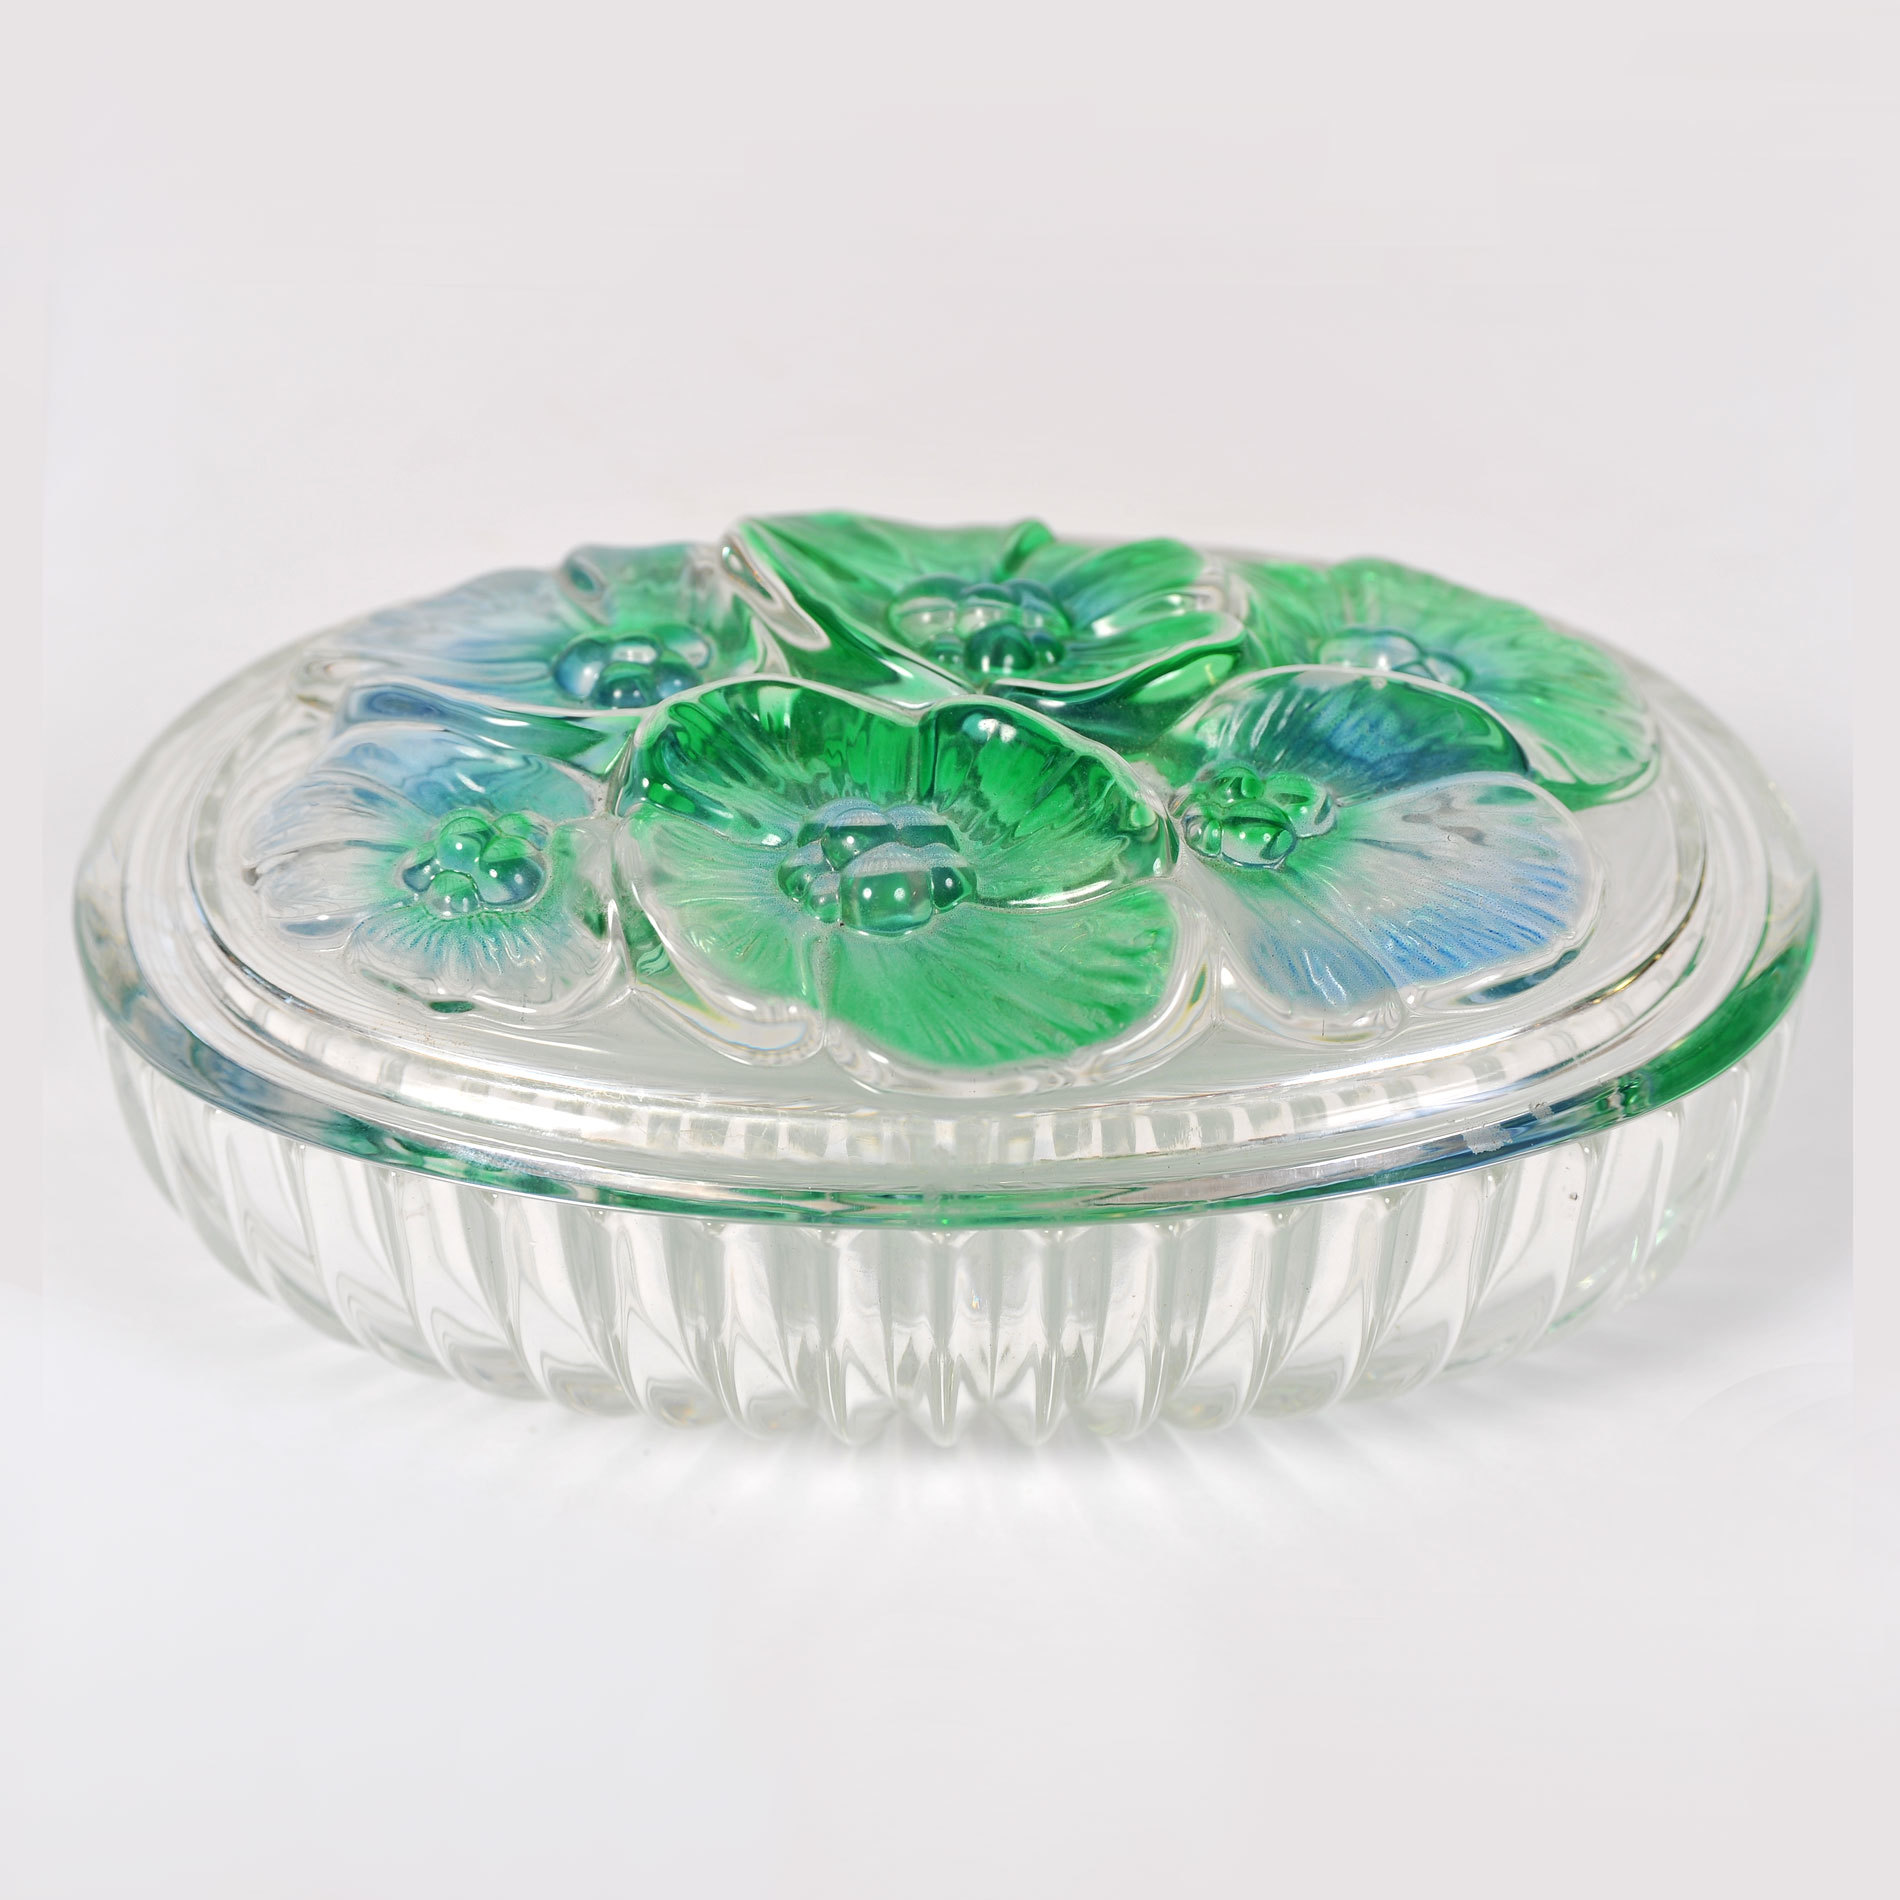 The image for Glass Lidded Bowl 01